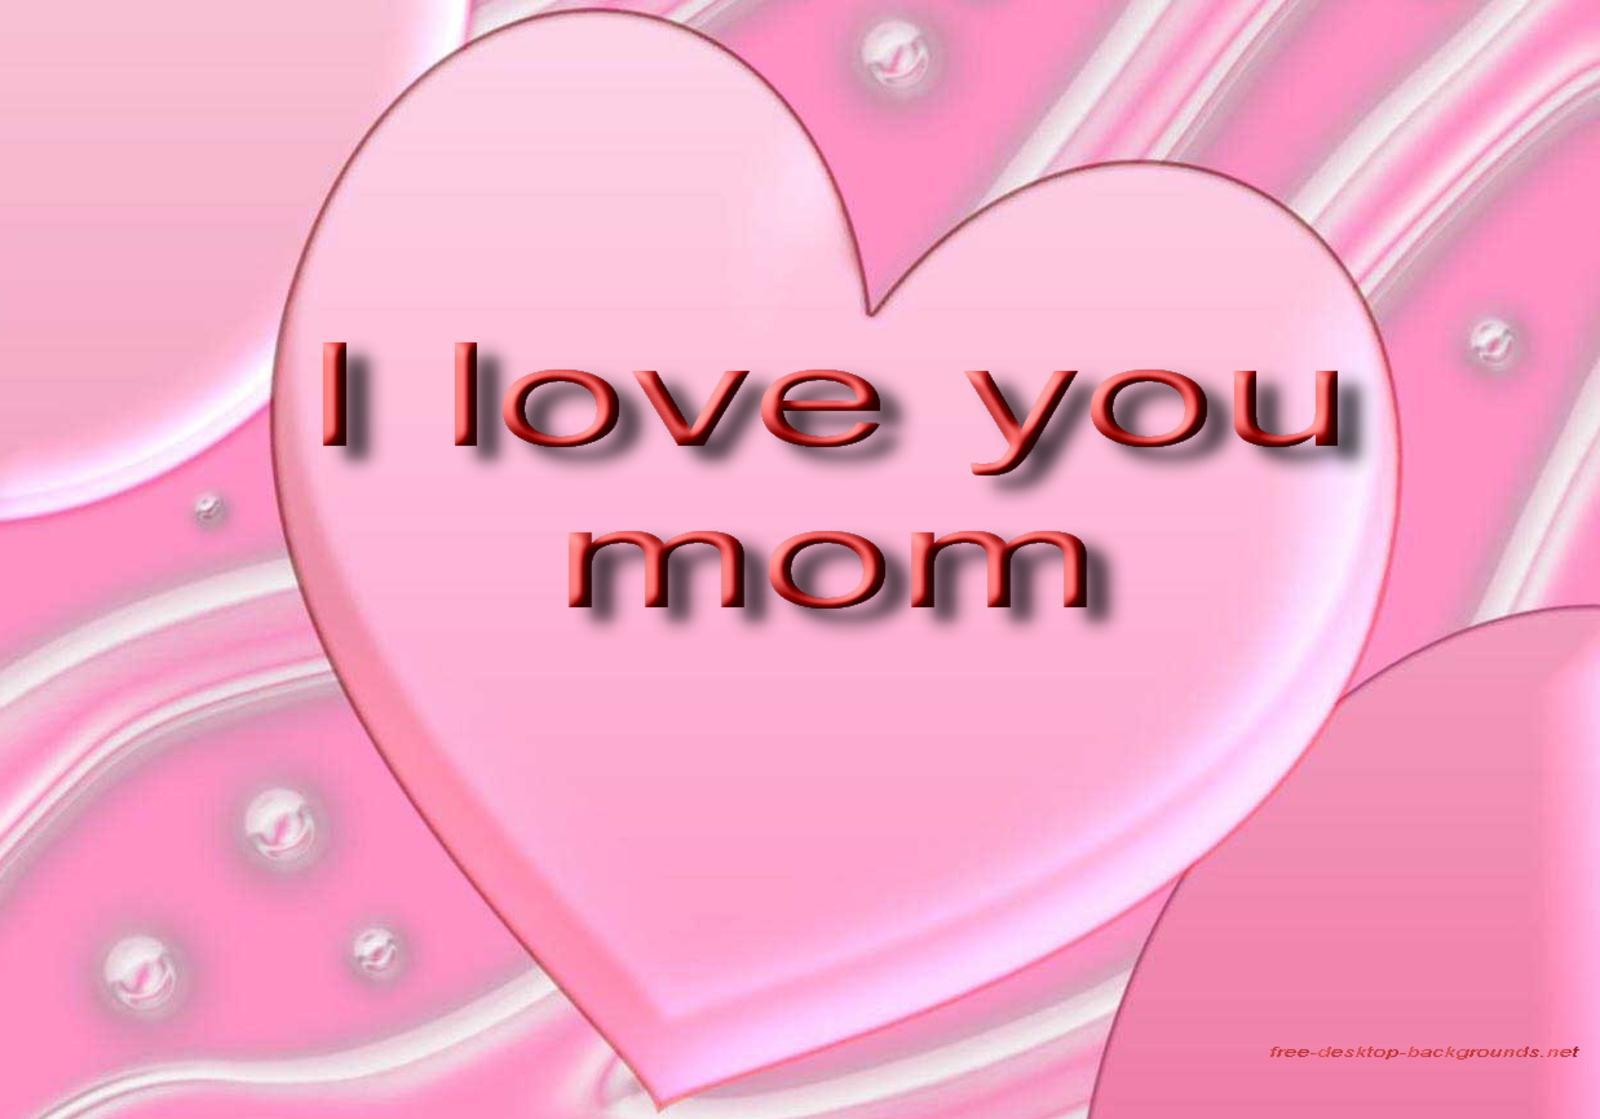 Free Download Love You Mom Desktop Wallpapers Desktop Background